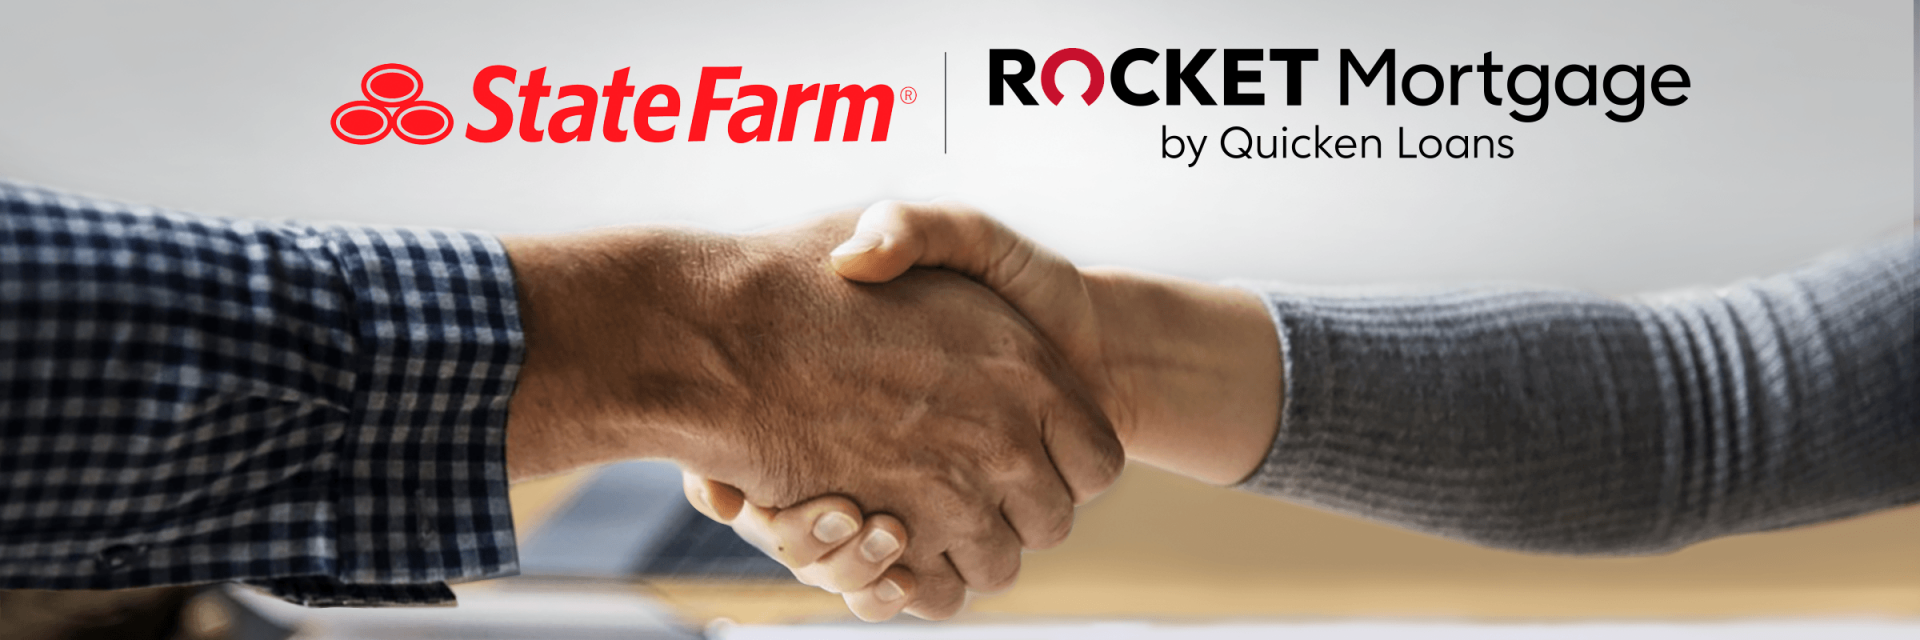 071719 RocketMortgage-StateFarm-Homepage